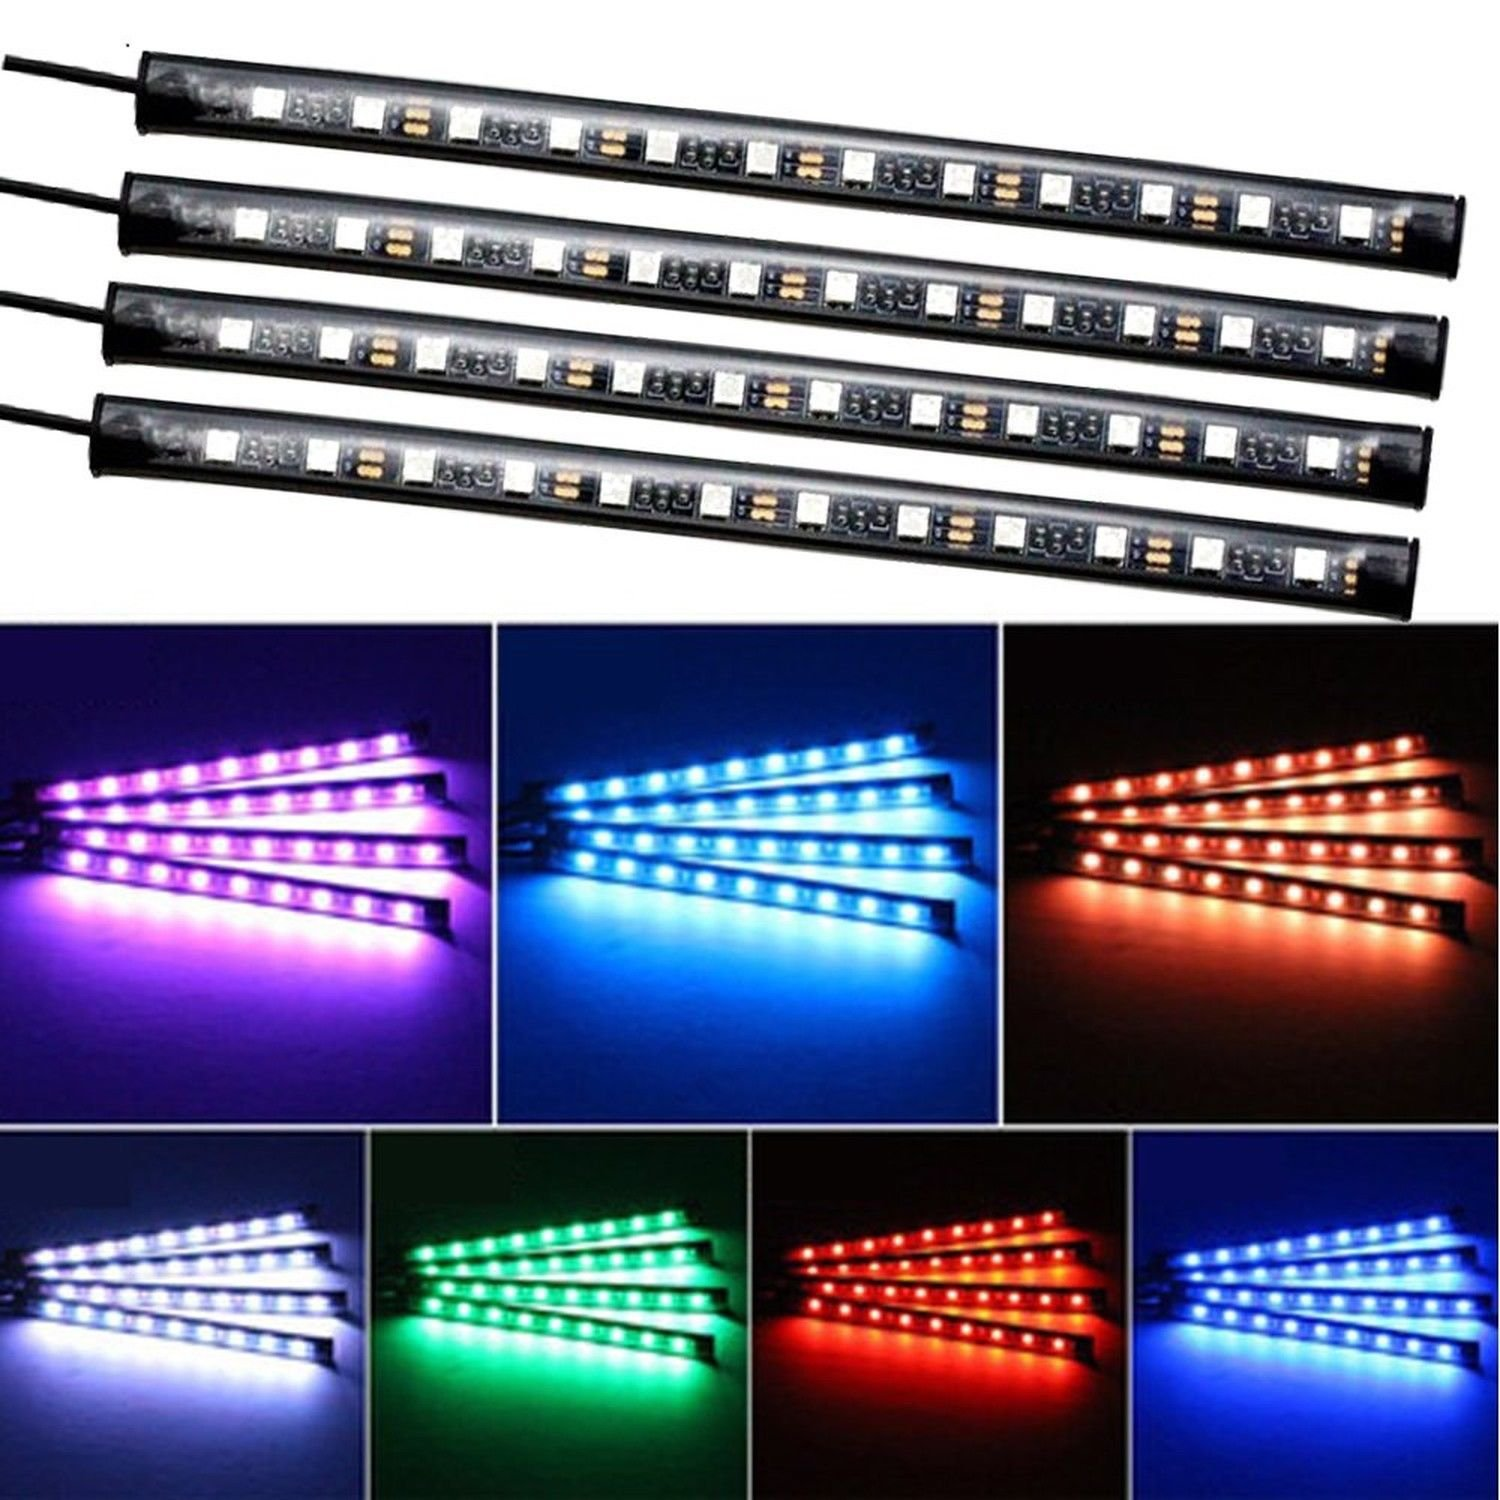 Car LED Strip Lights,4pcs 48 LED Multicolor Music Interior Strip Lights Under Dash Lighting Waterproof Kit With Sound Active Function And Wireless Remote Control,Car Charger Included,DC 12V by Creatrek (Image #6)